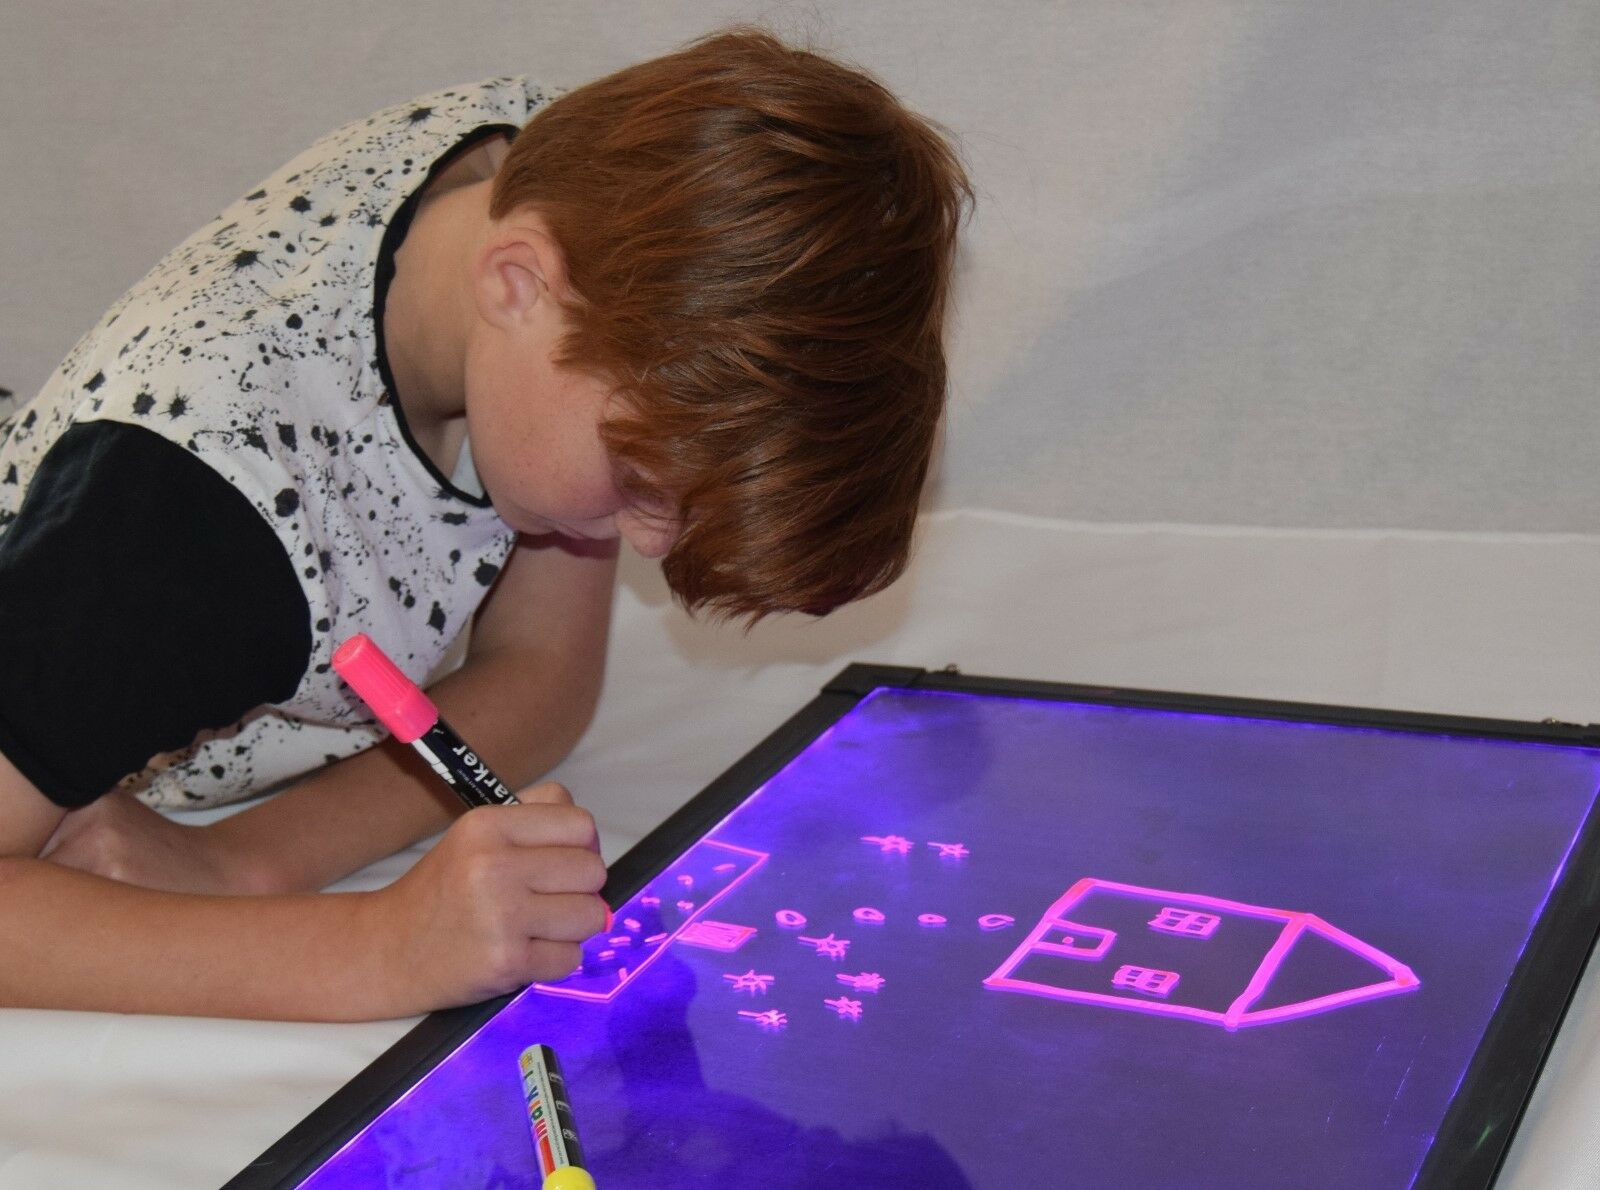 Sensory LED board, light up, drawing writing,toy,special needs,autism, ASD, ADHD